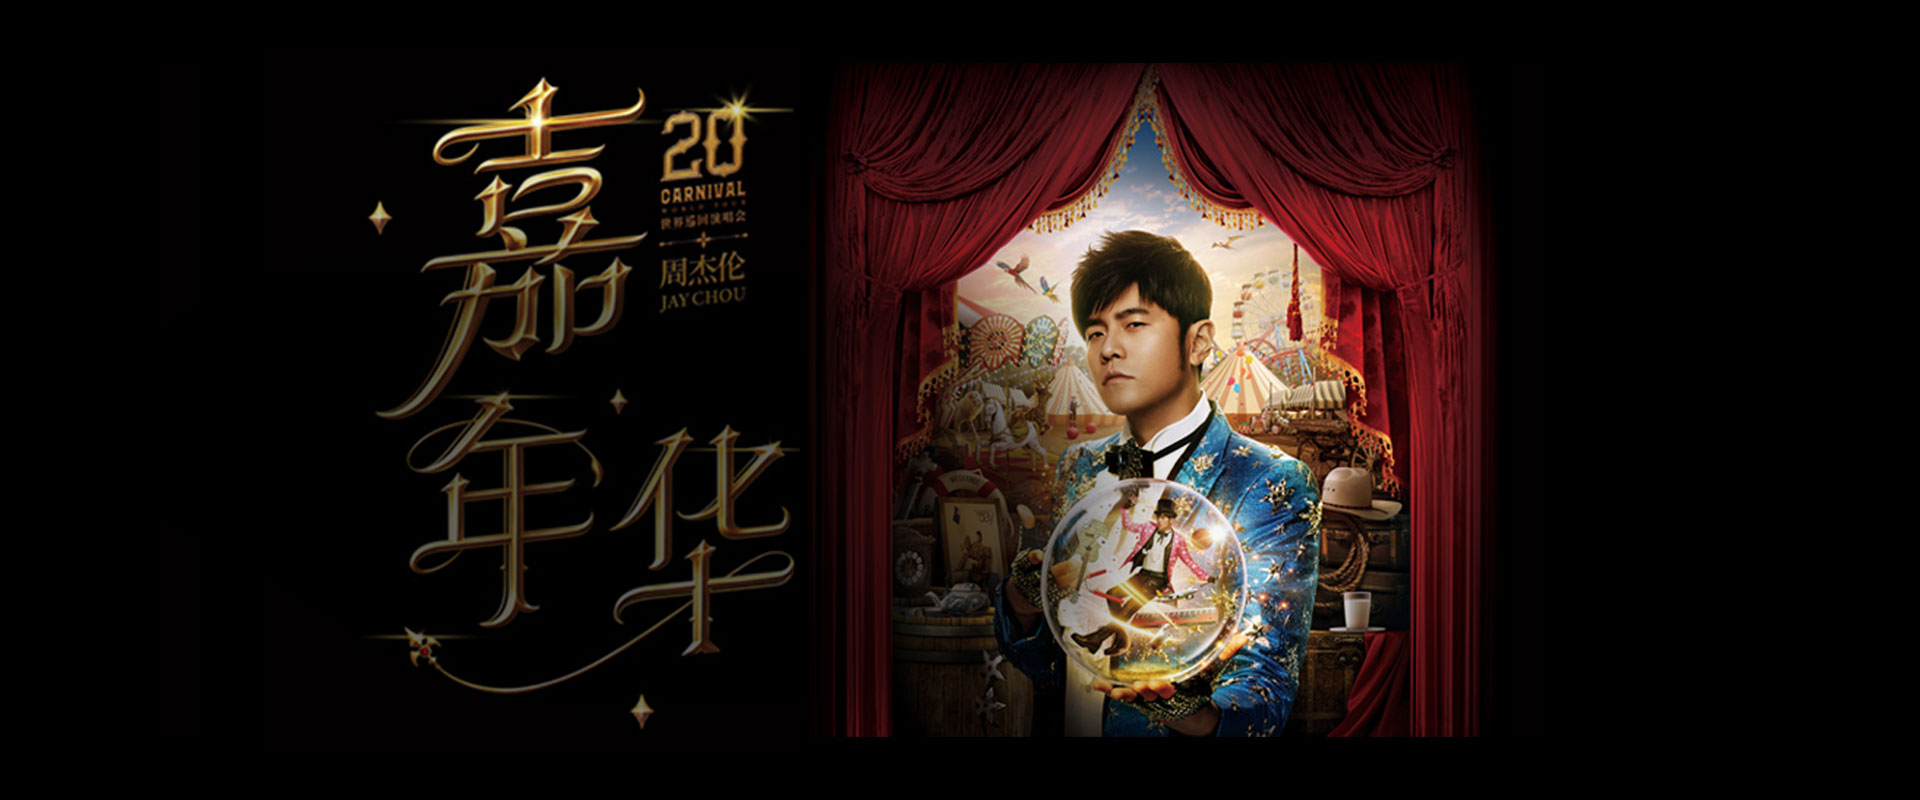 Rothstar Group support Jay Chou Carnical World Tour 2019